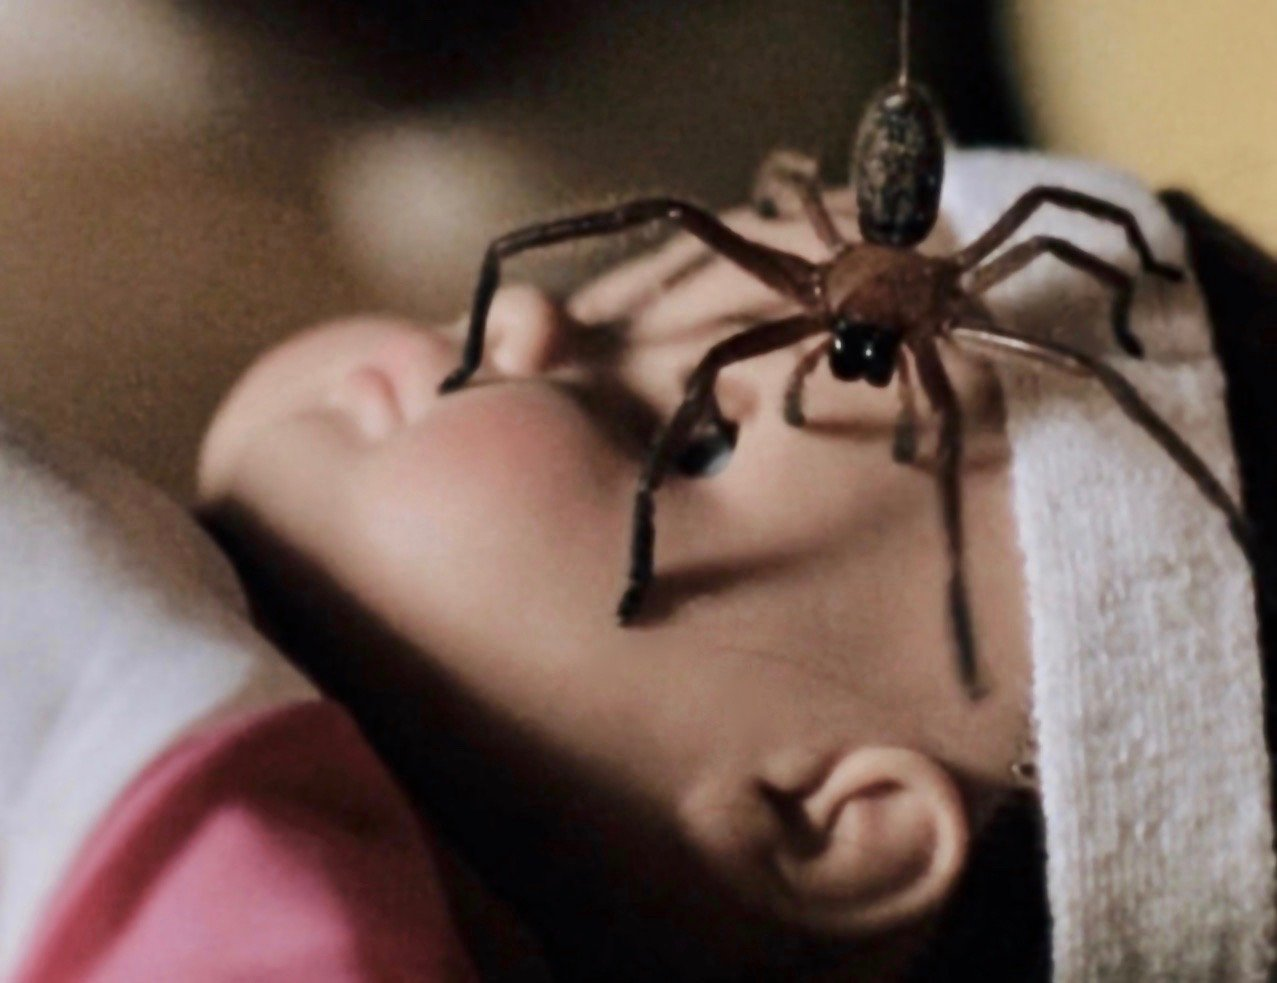 4 3 These 20 Creepy Facts About Disney's Arachnophobia Definitely Have Legs